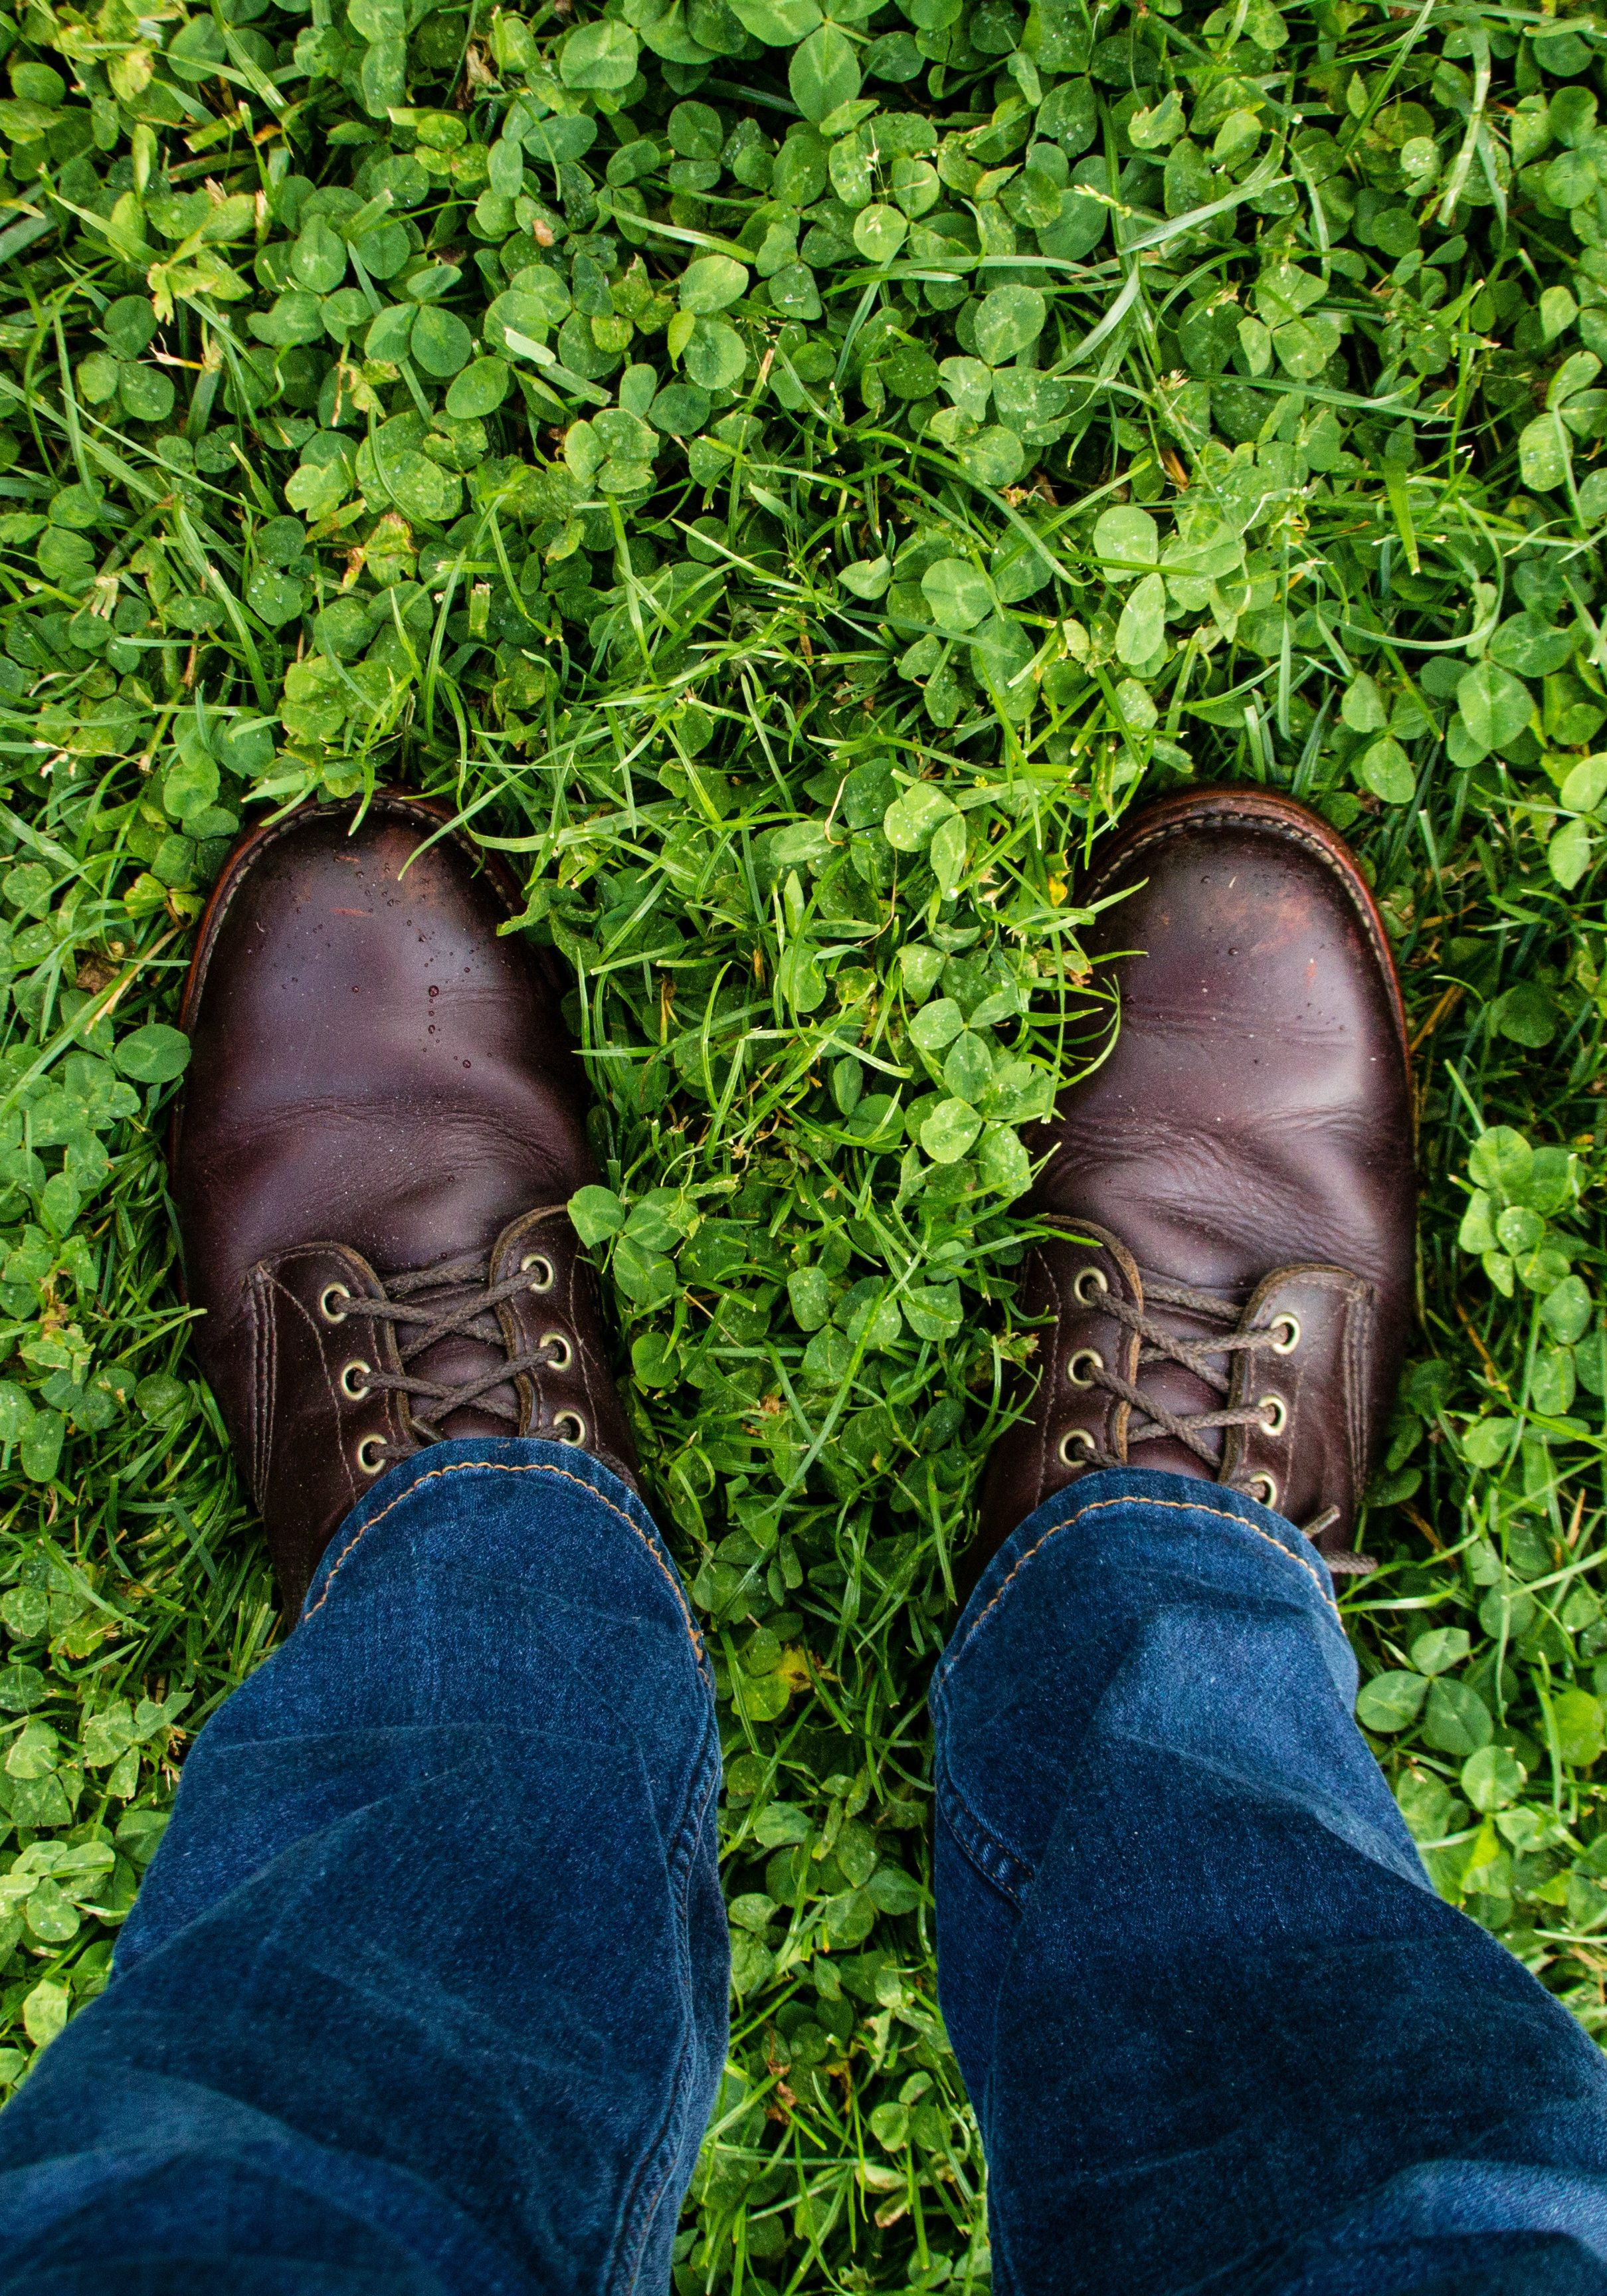 Brown Shoes on Green Clover Grass